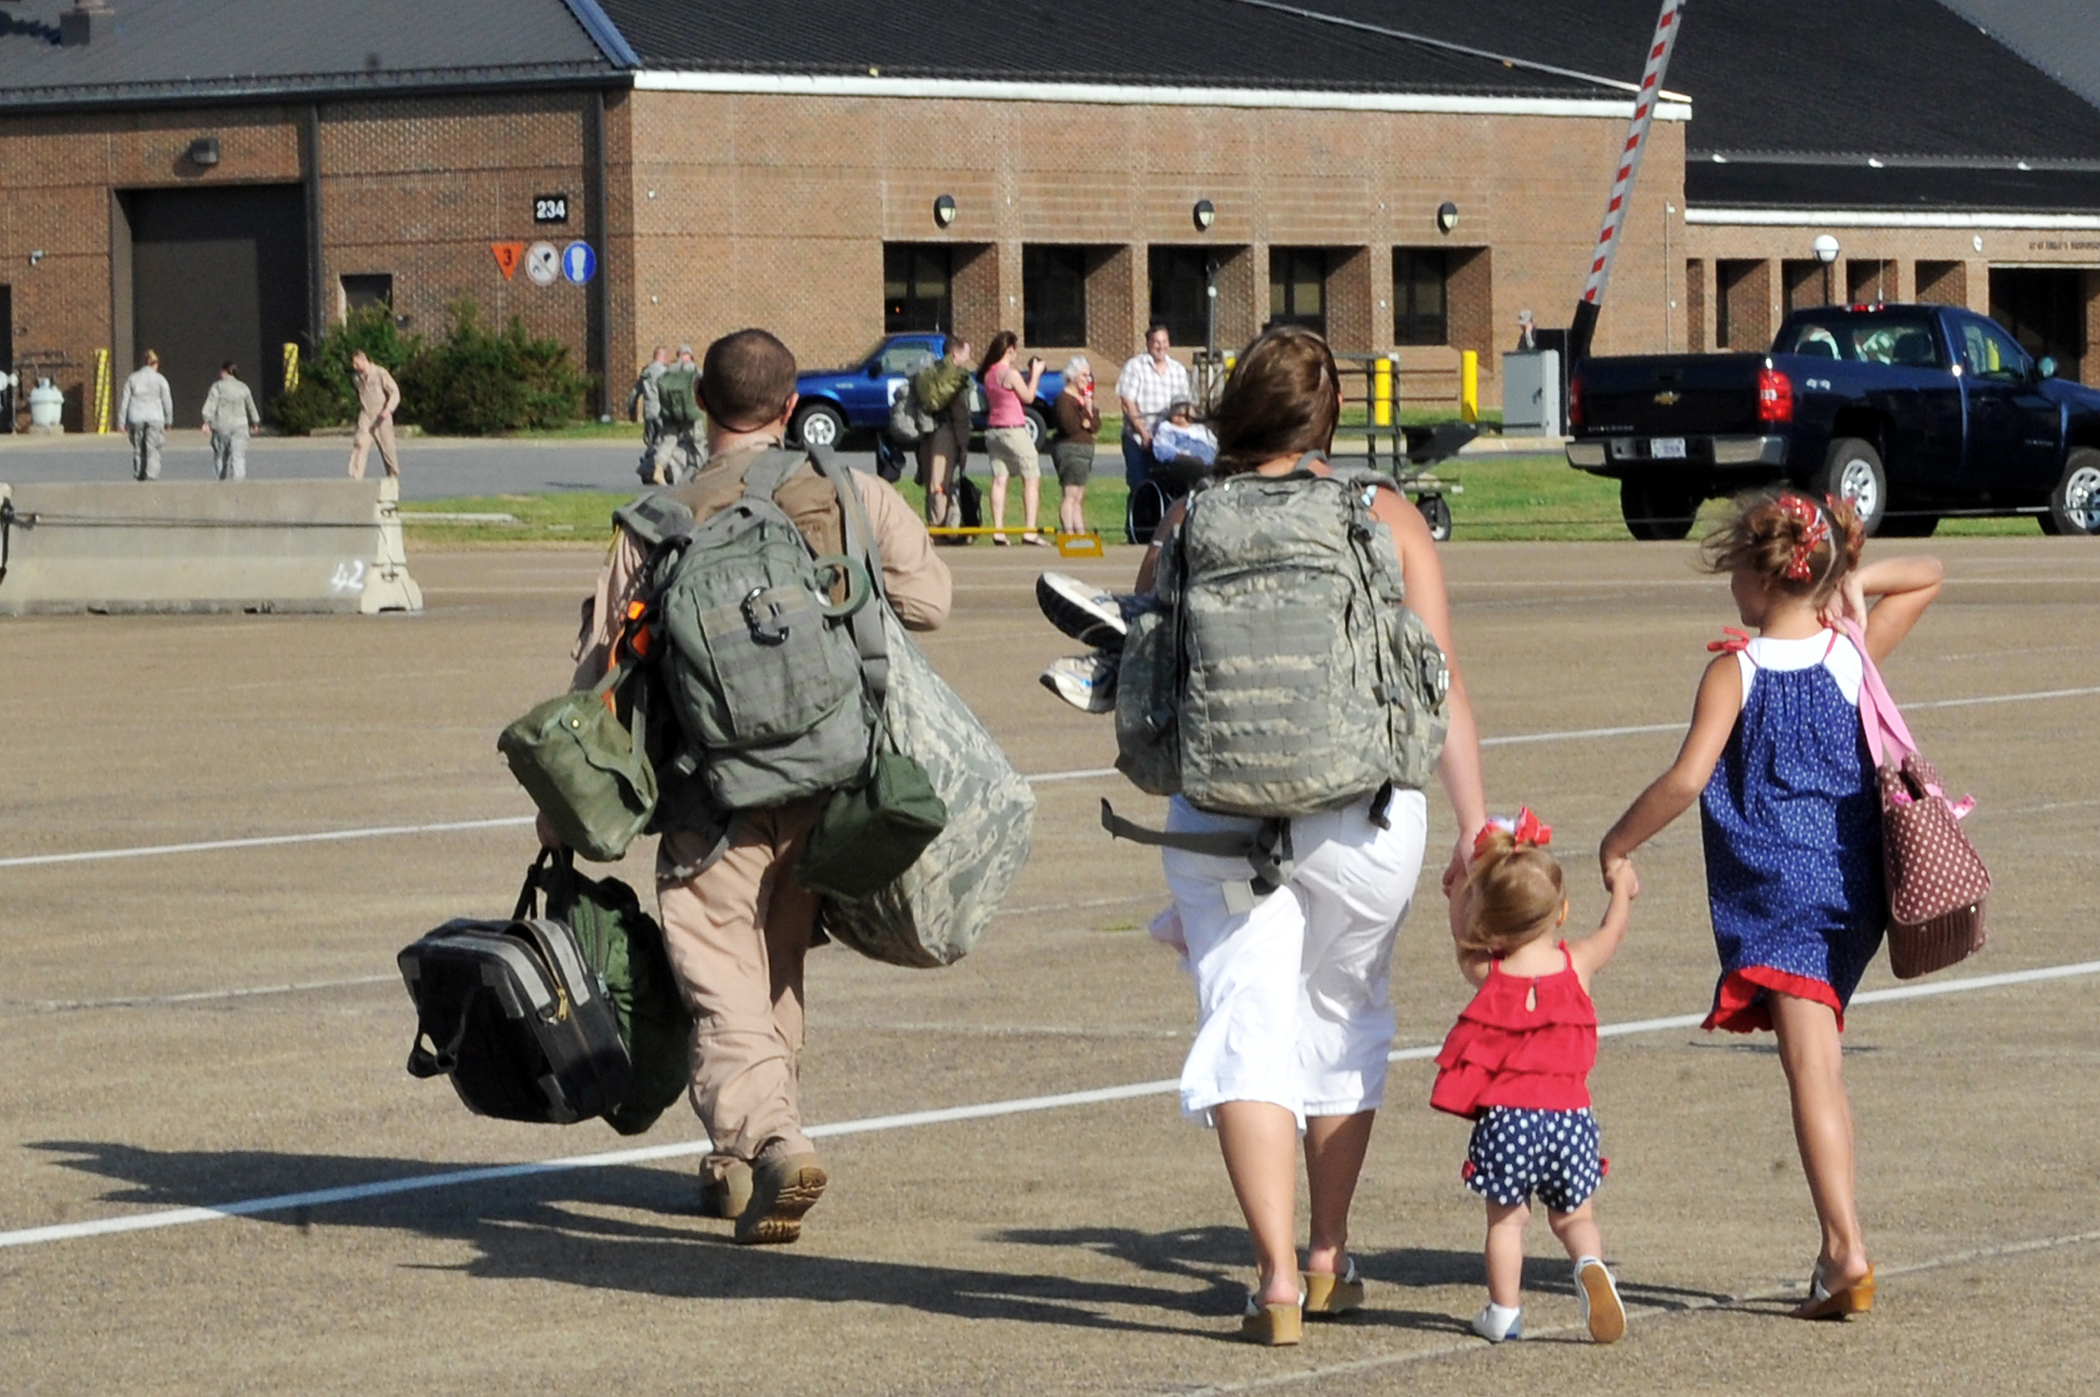 Senators: Give military families more stability in moves